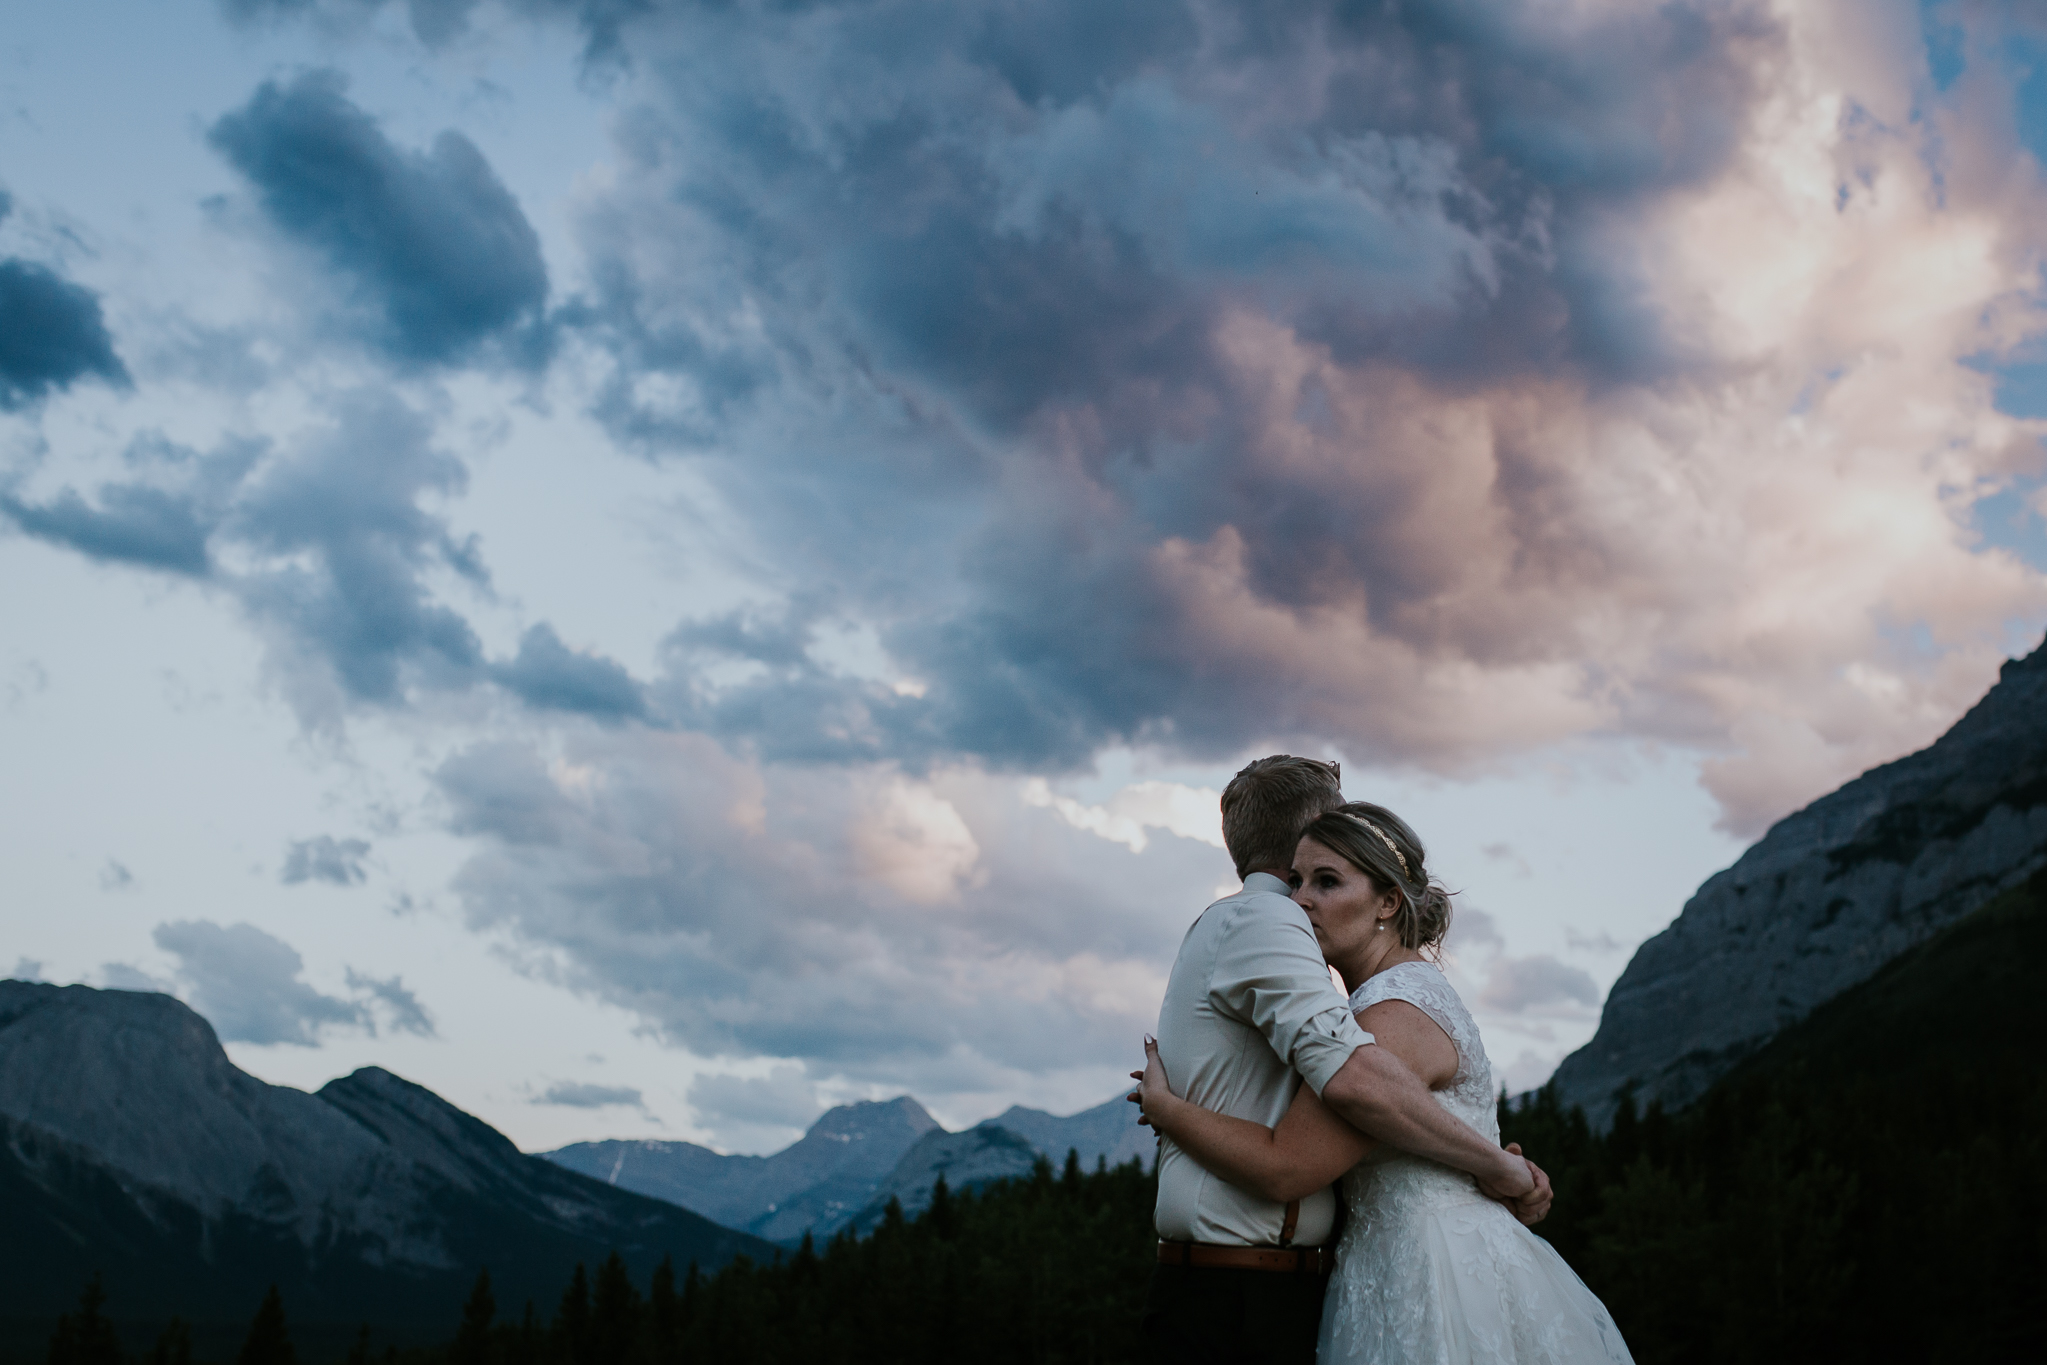 Bride and groom at sunset during photos at Delta Kananaskis wedding